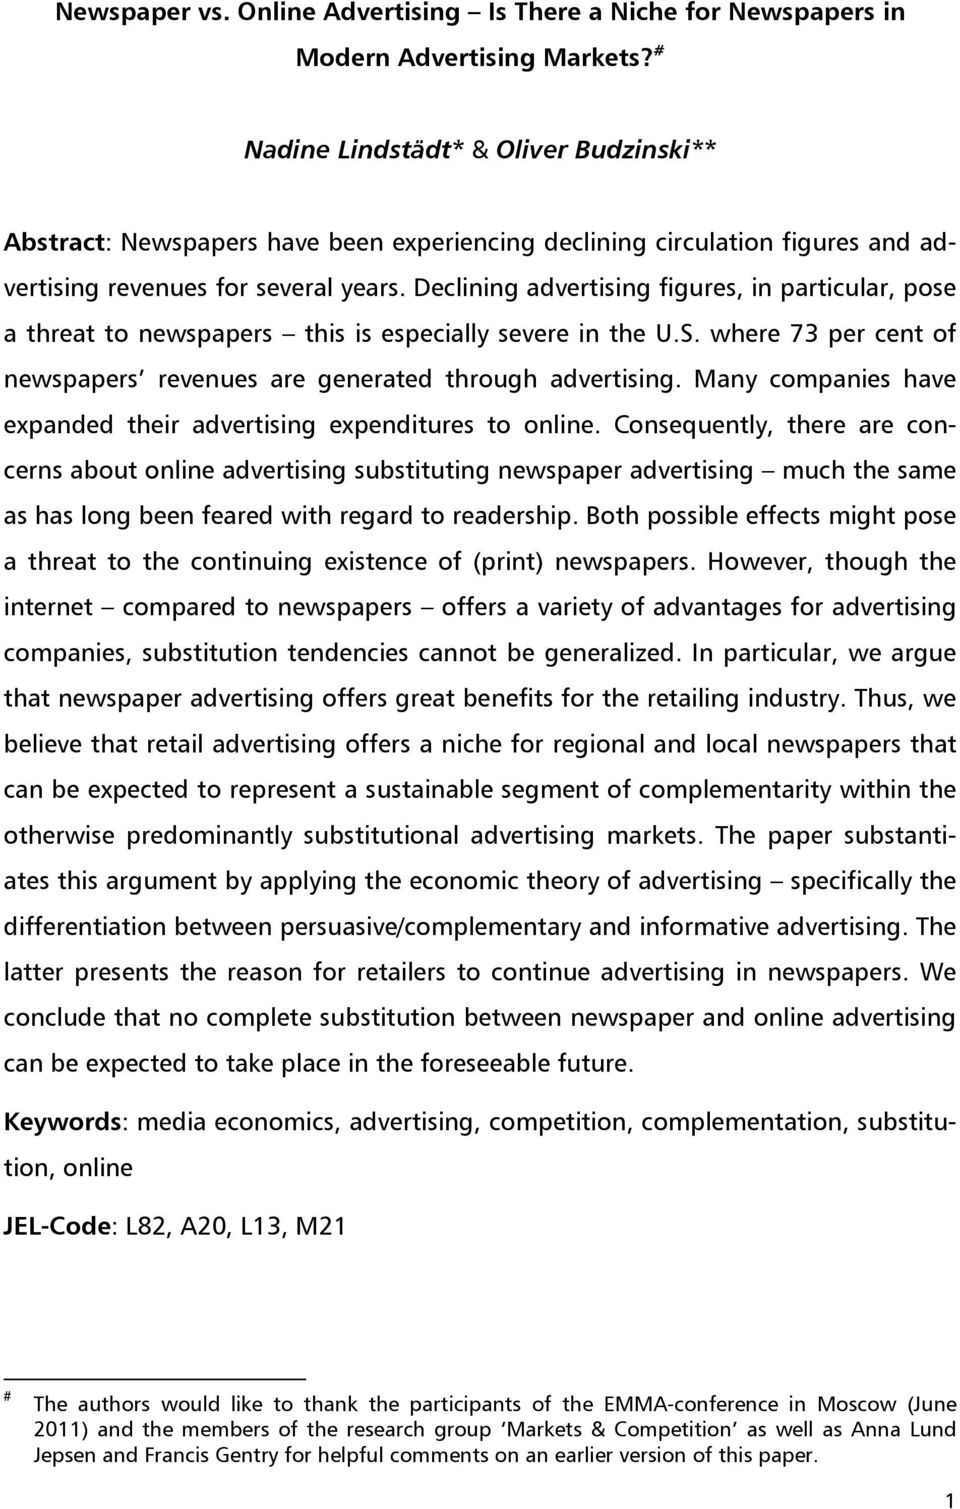 Declining advertising figures, in particular, pose a threat to newspapers this is especially severe in the U.S. where 73 per cent of newspapers revenues are generated through advertising.